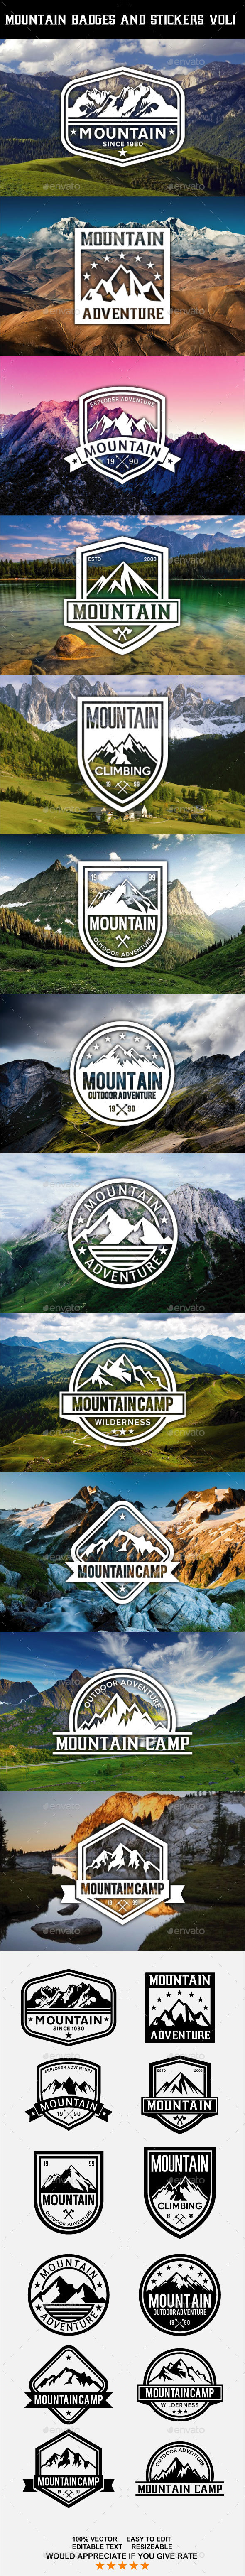 Mountain Badges and Stickers Vol 1  - Badges & Stickers Web Elements